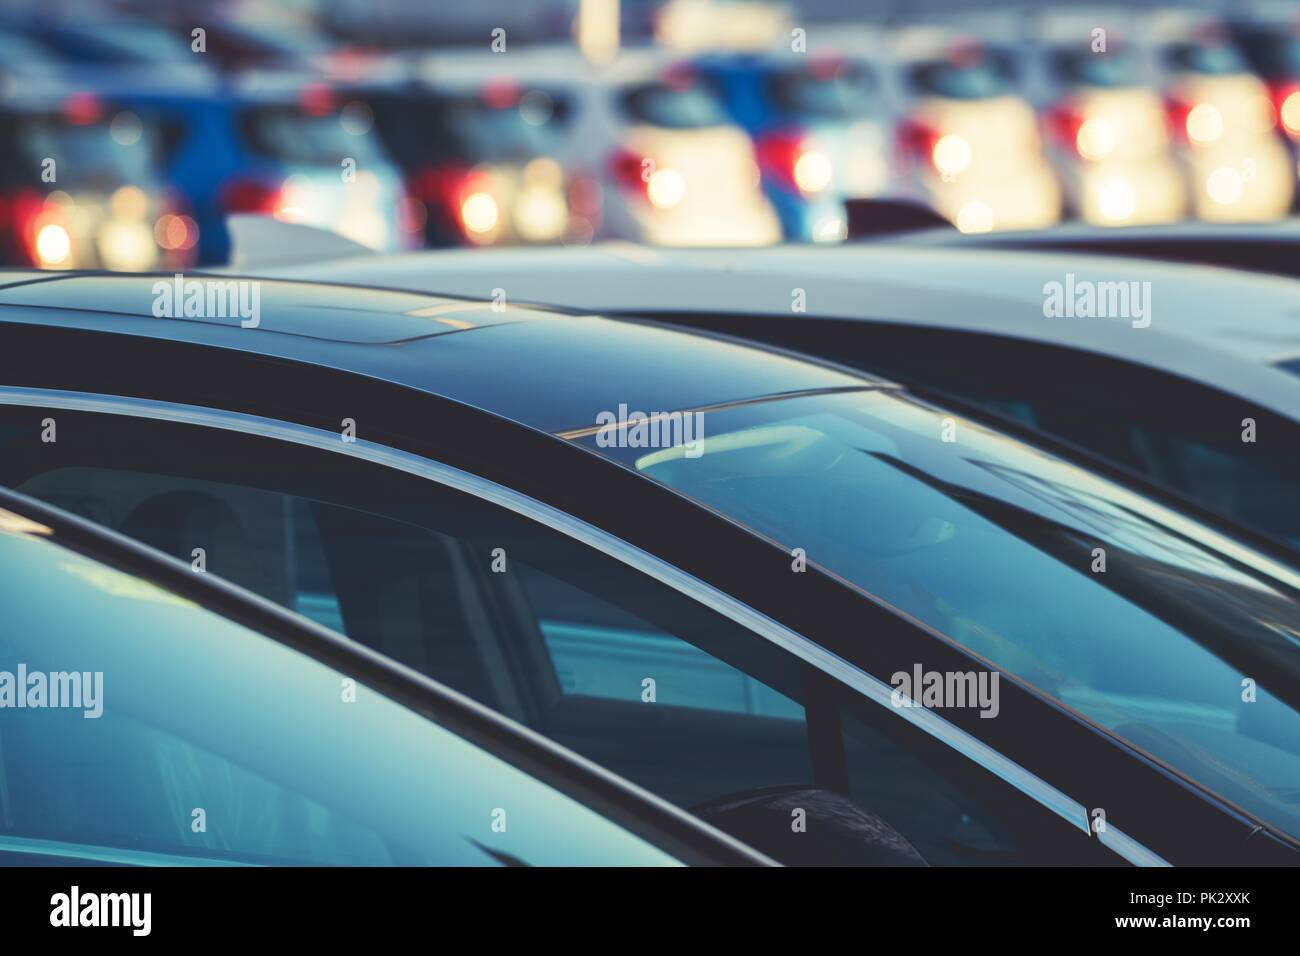 Long Term Parking Stock Photos Amp Long Term Parking Stock